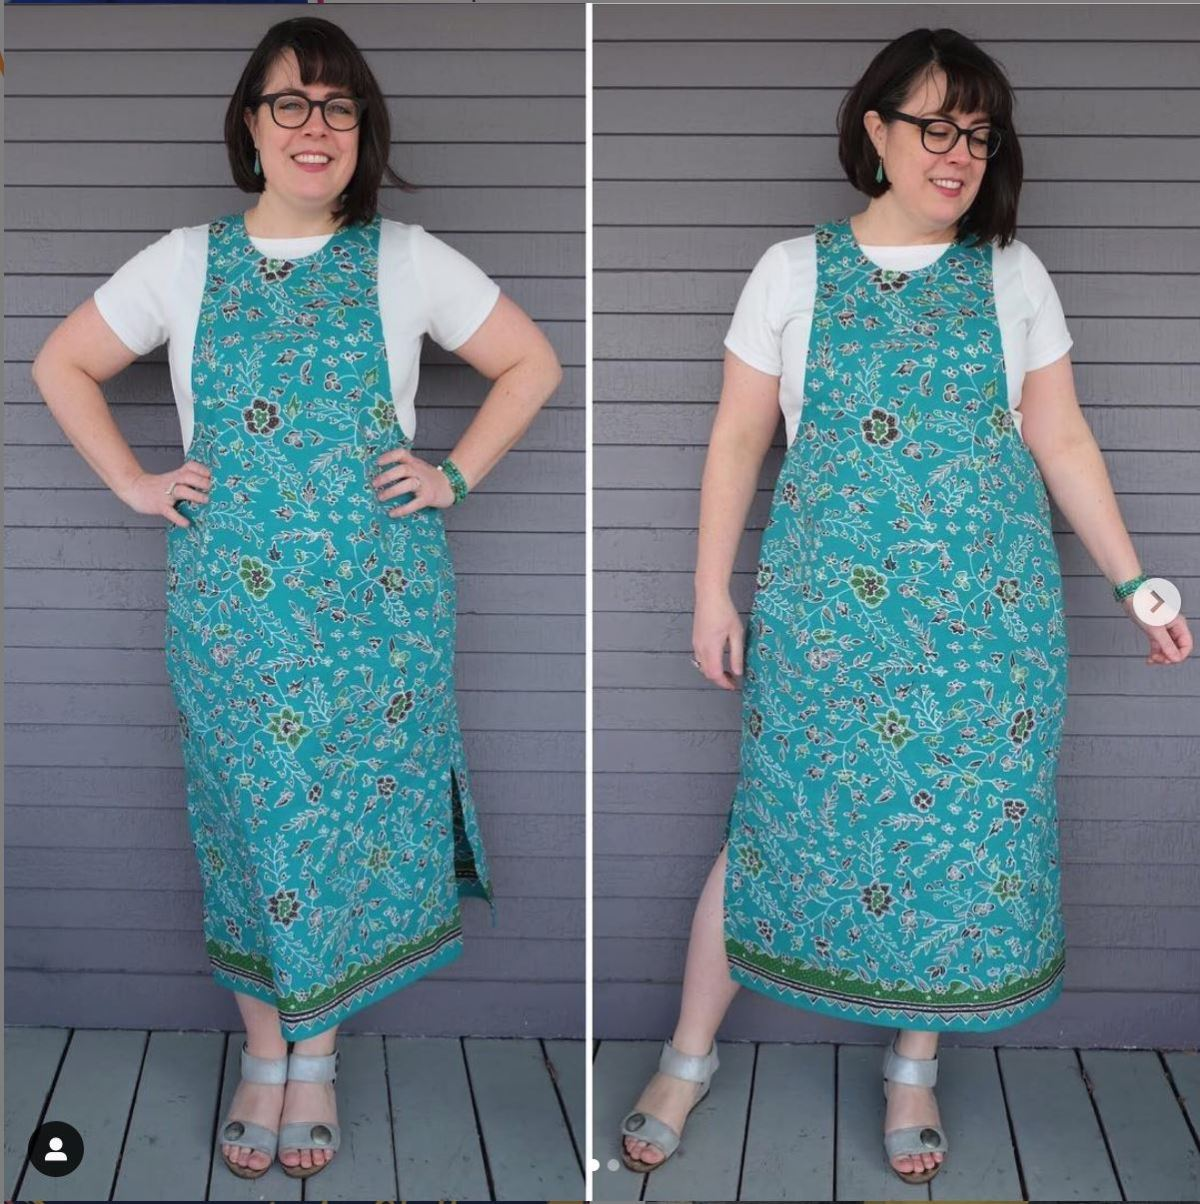 Blue overalls / pinafore style dress